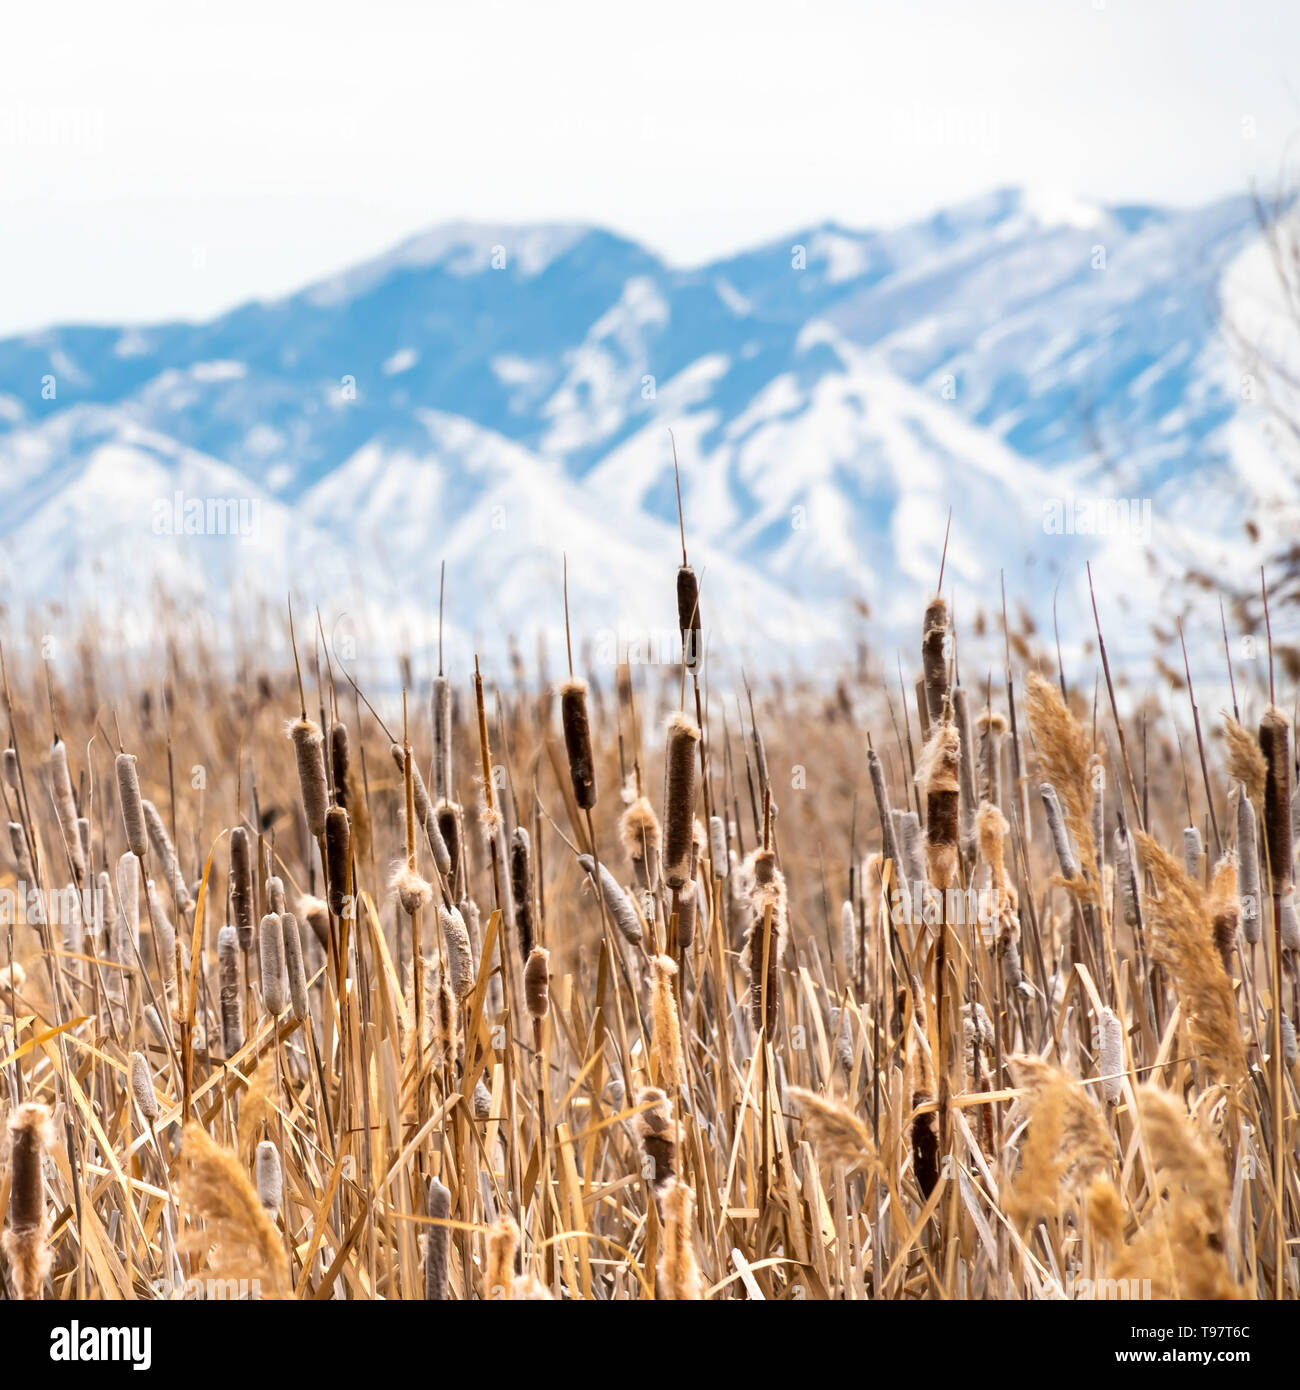 Square Tall brown grasses on a vast terrain viewed on a sunny winter day - Stock Image